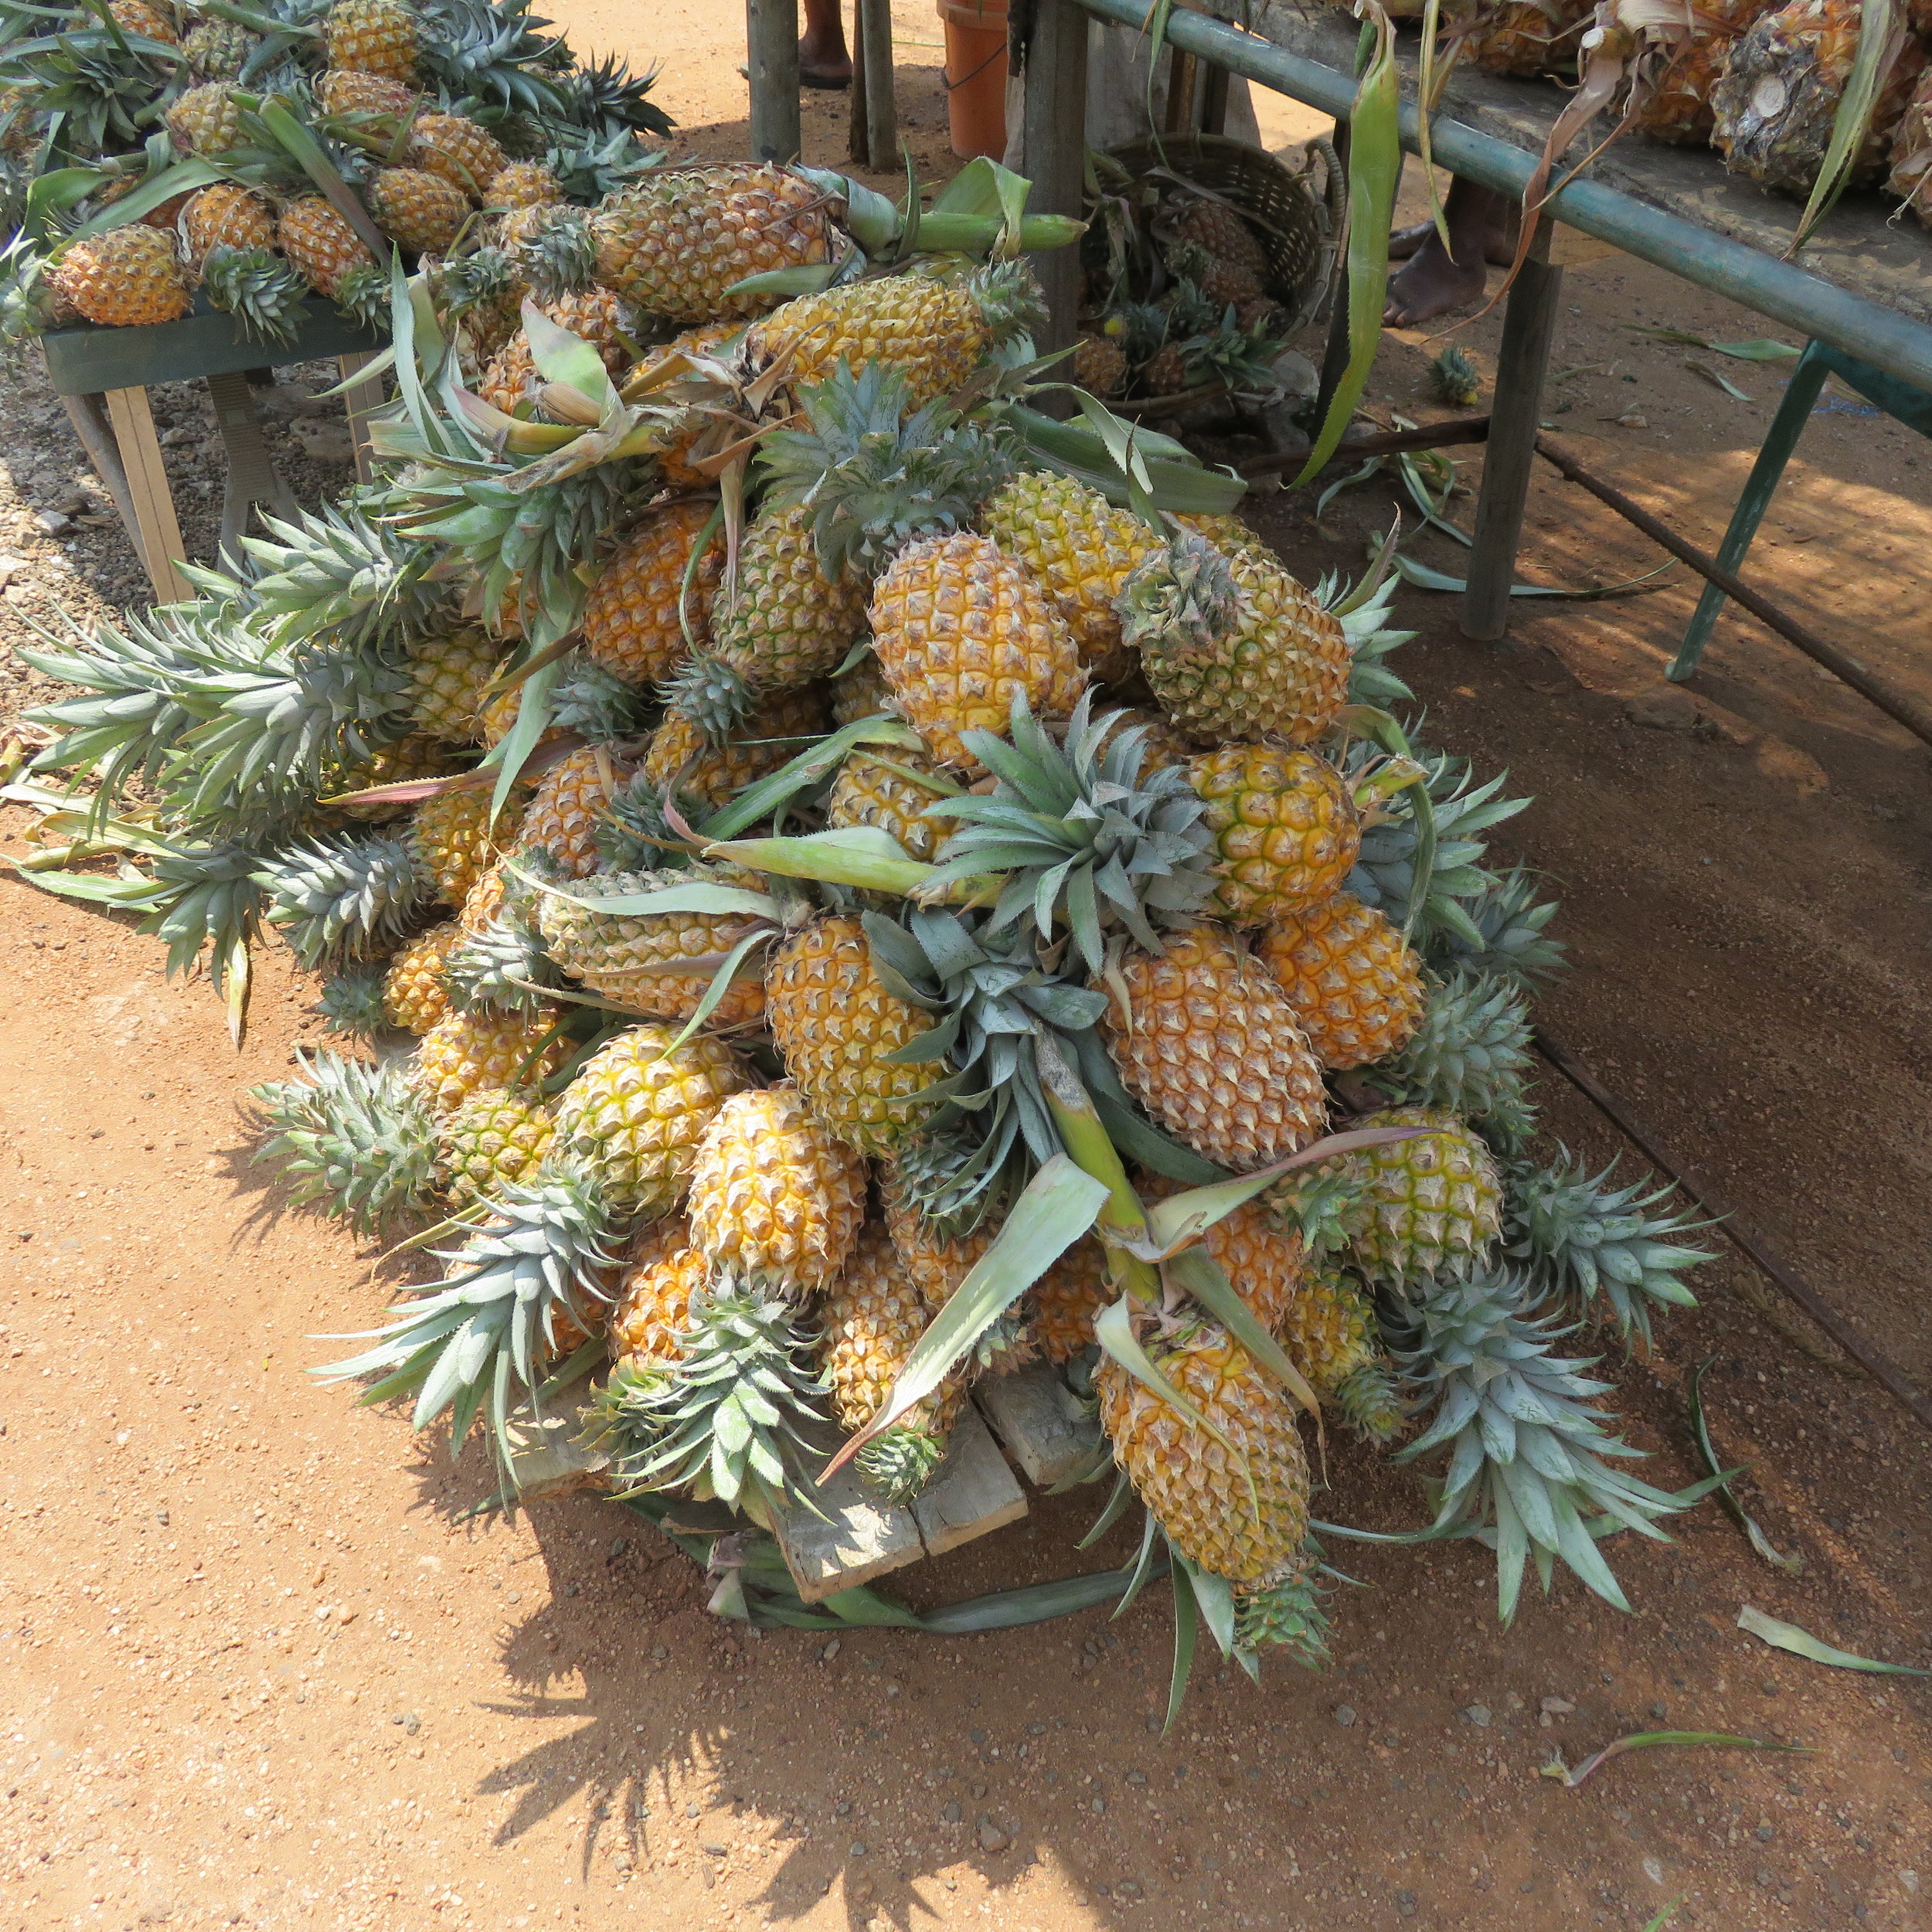 invite-to-paradise-sri-lanka-specialists-thomas-family-holiday-tour-pinapples.JPG